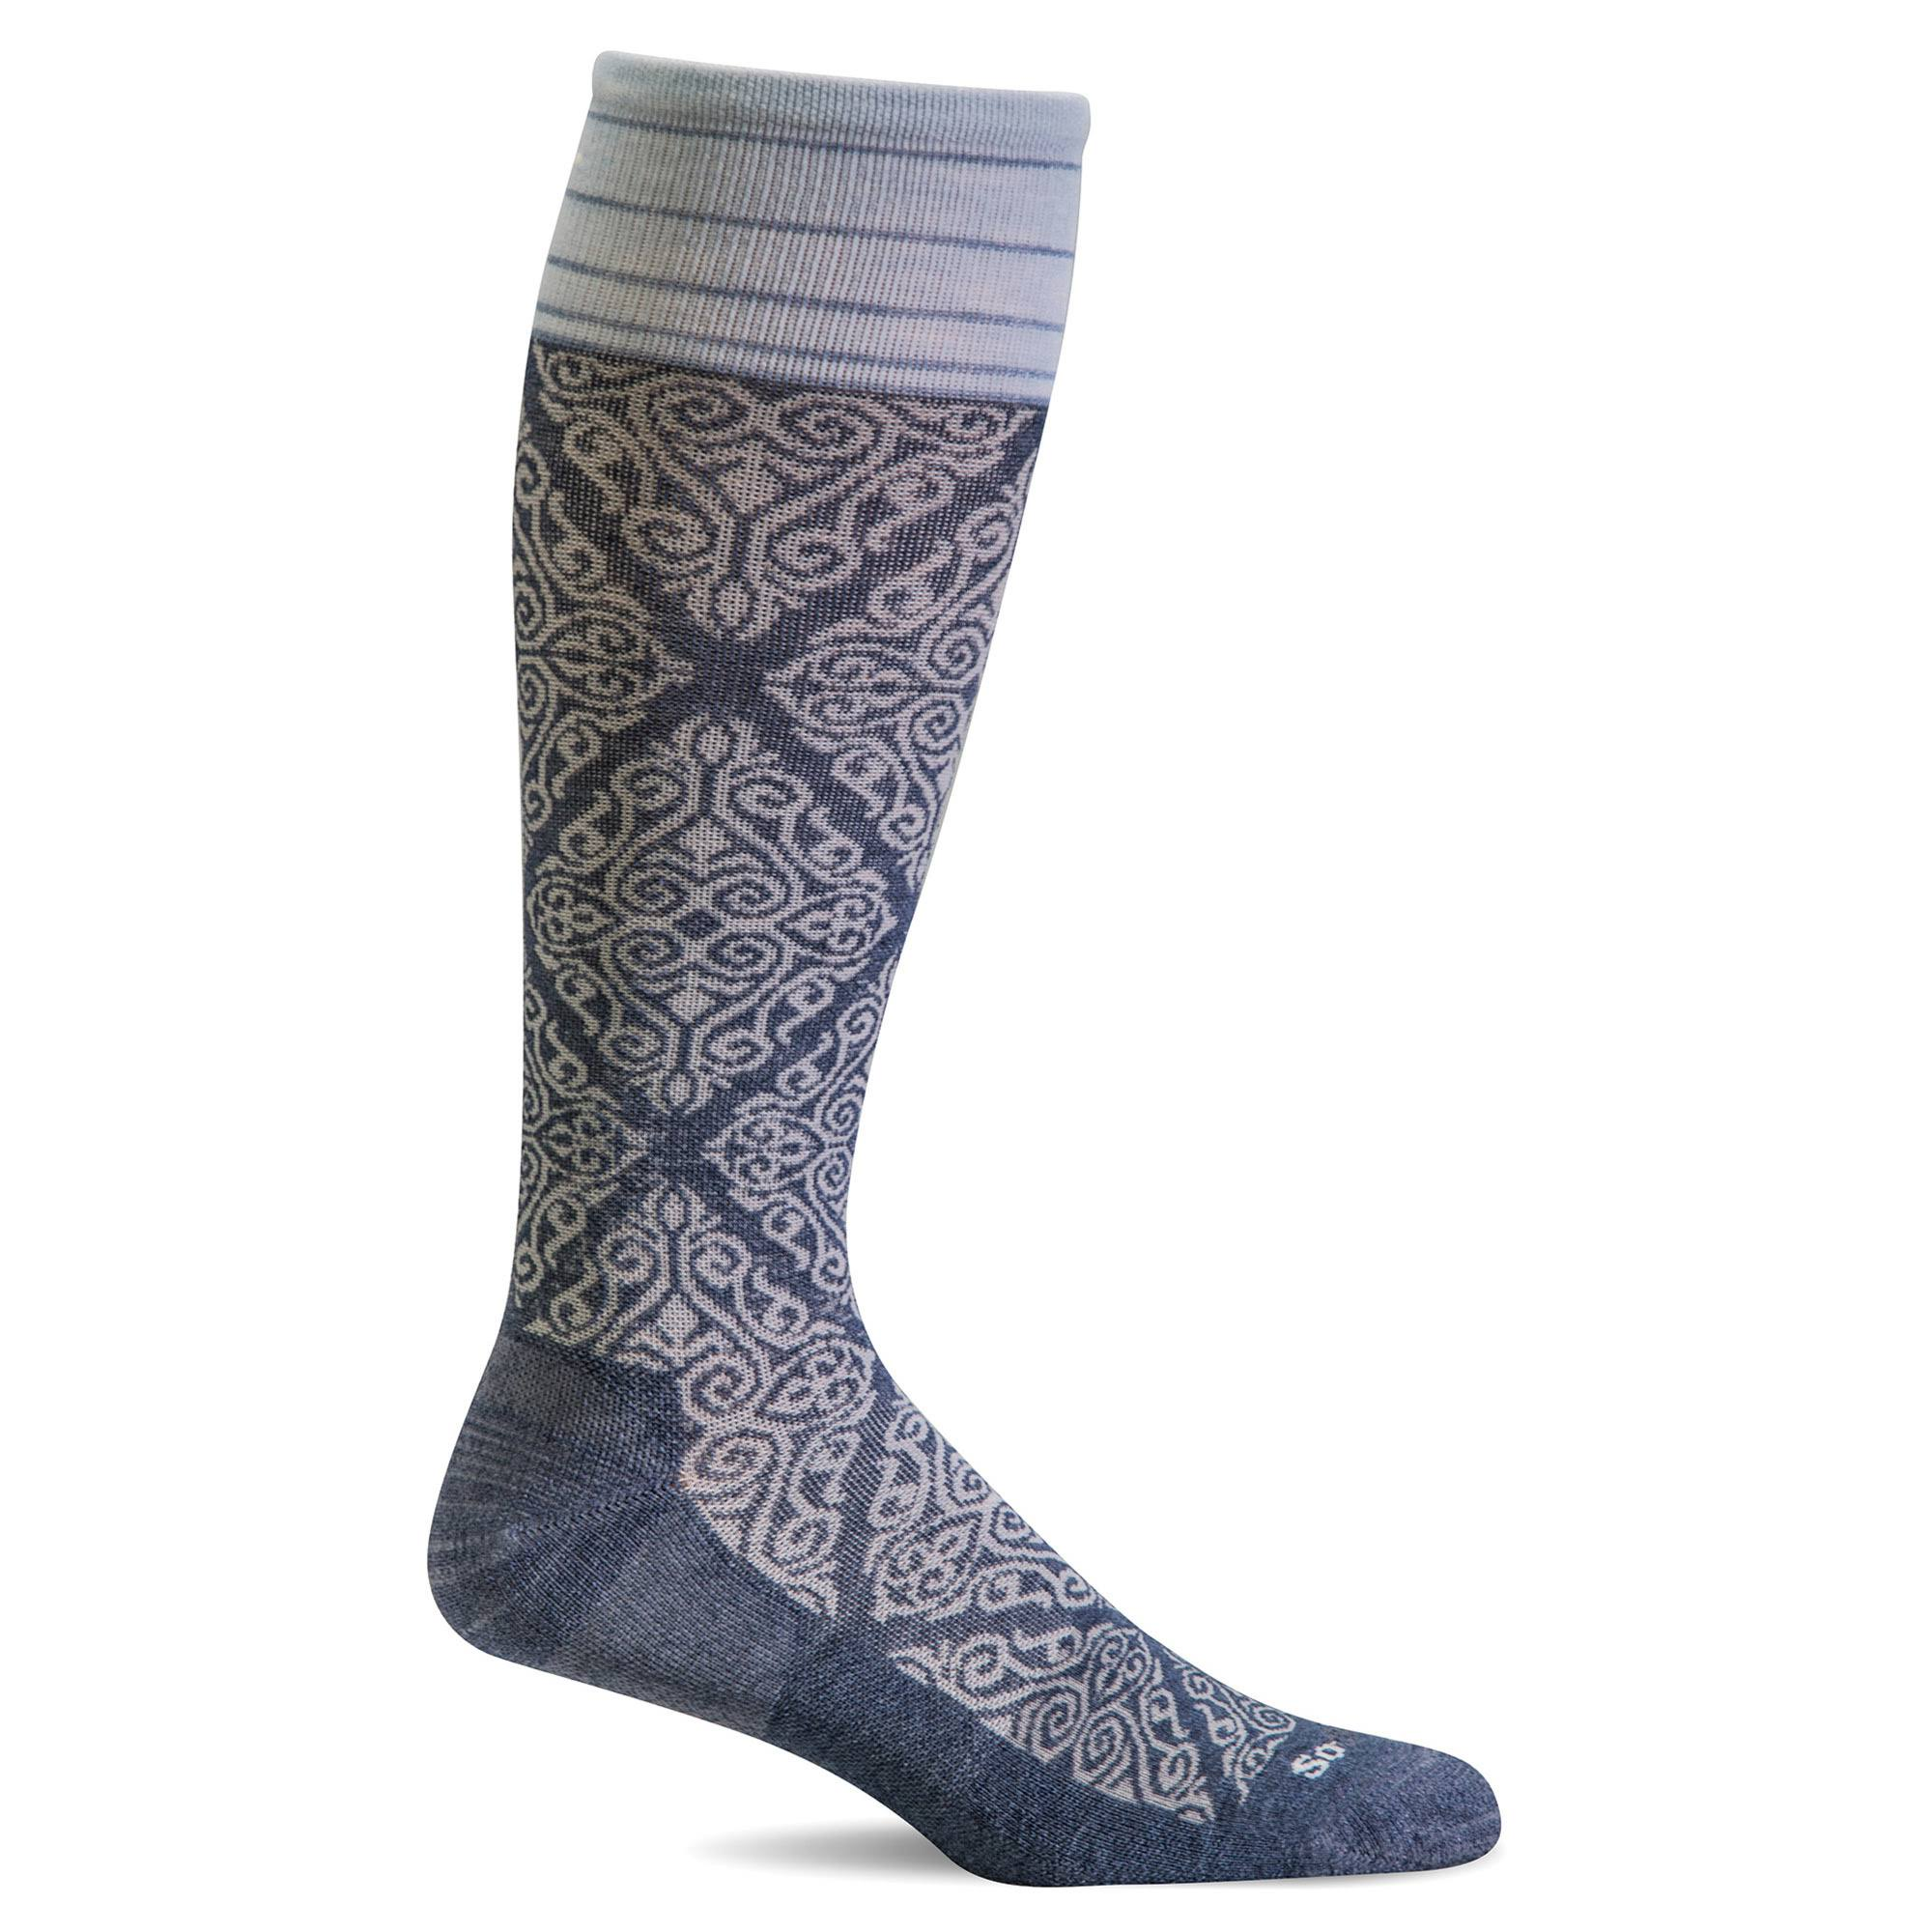 Sockwell Women's The Raj Firm Compression Socks